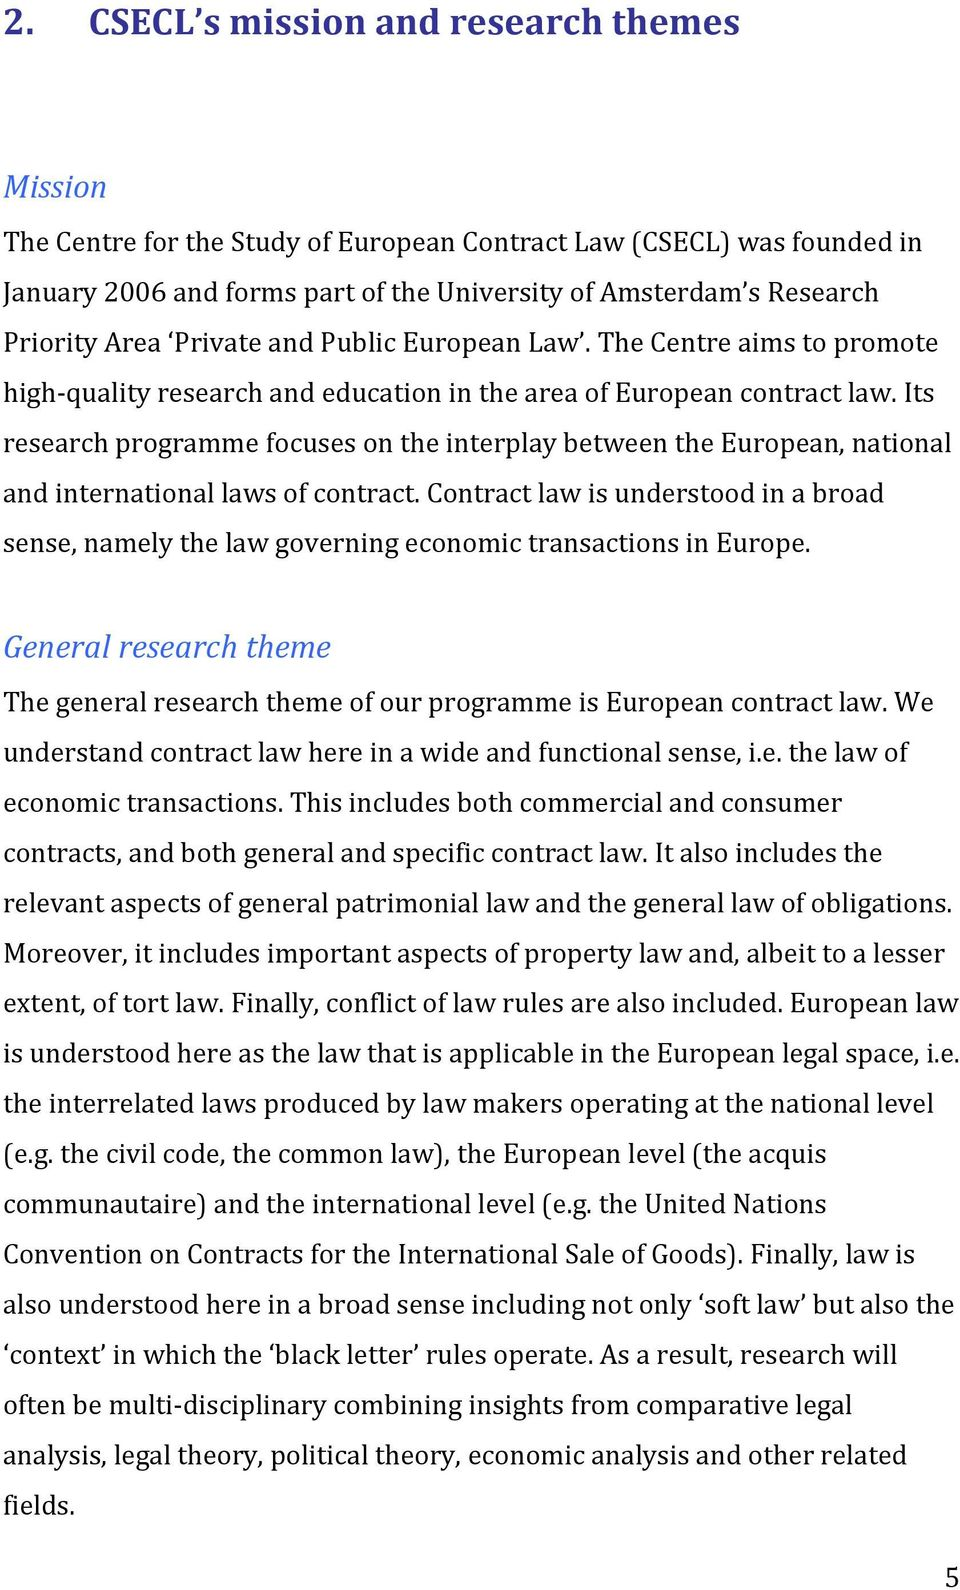 Its research programme focuses on the interplay between the European, national and international laws of contract.